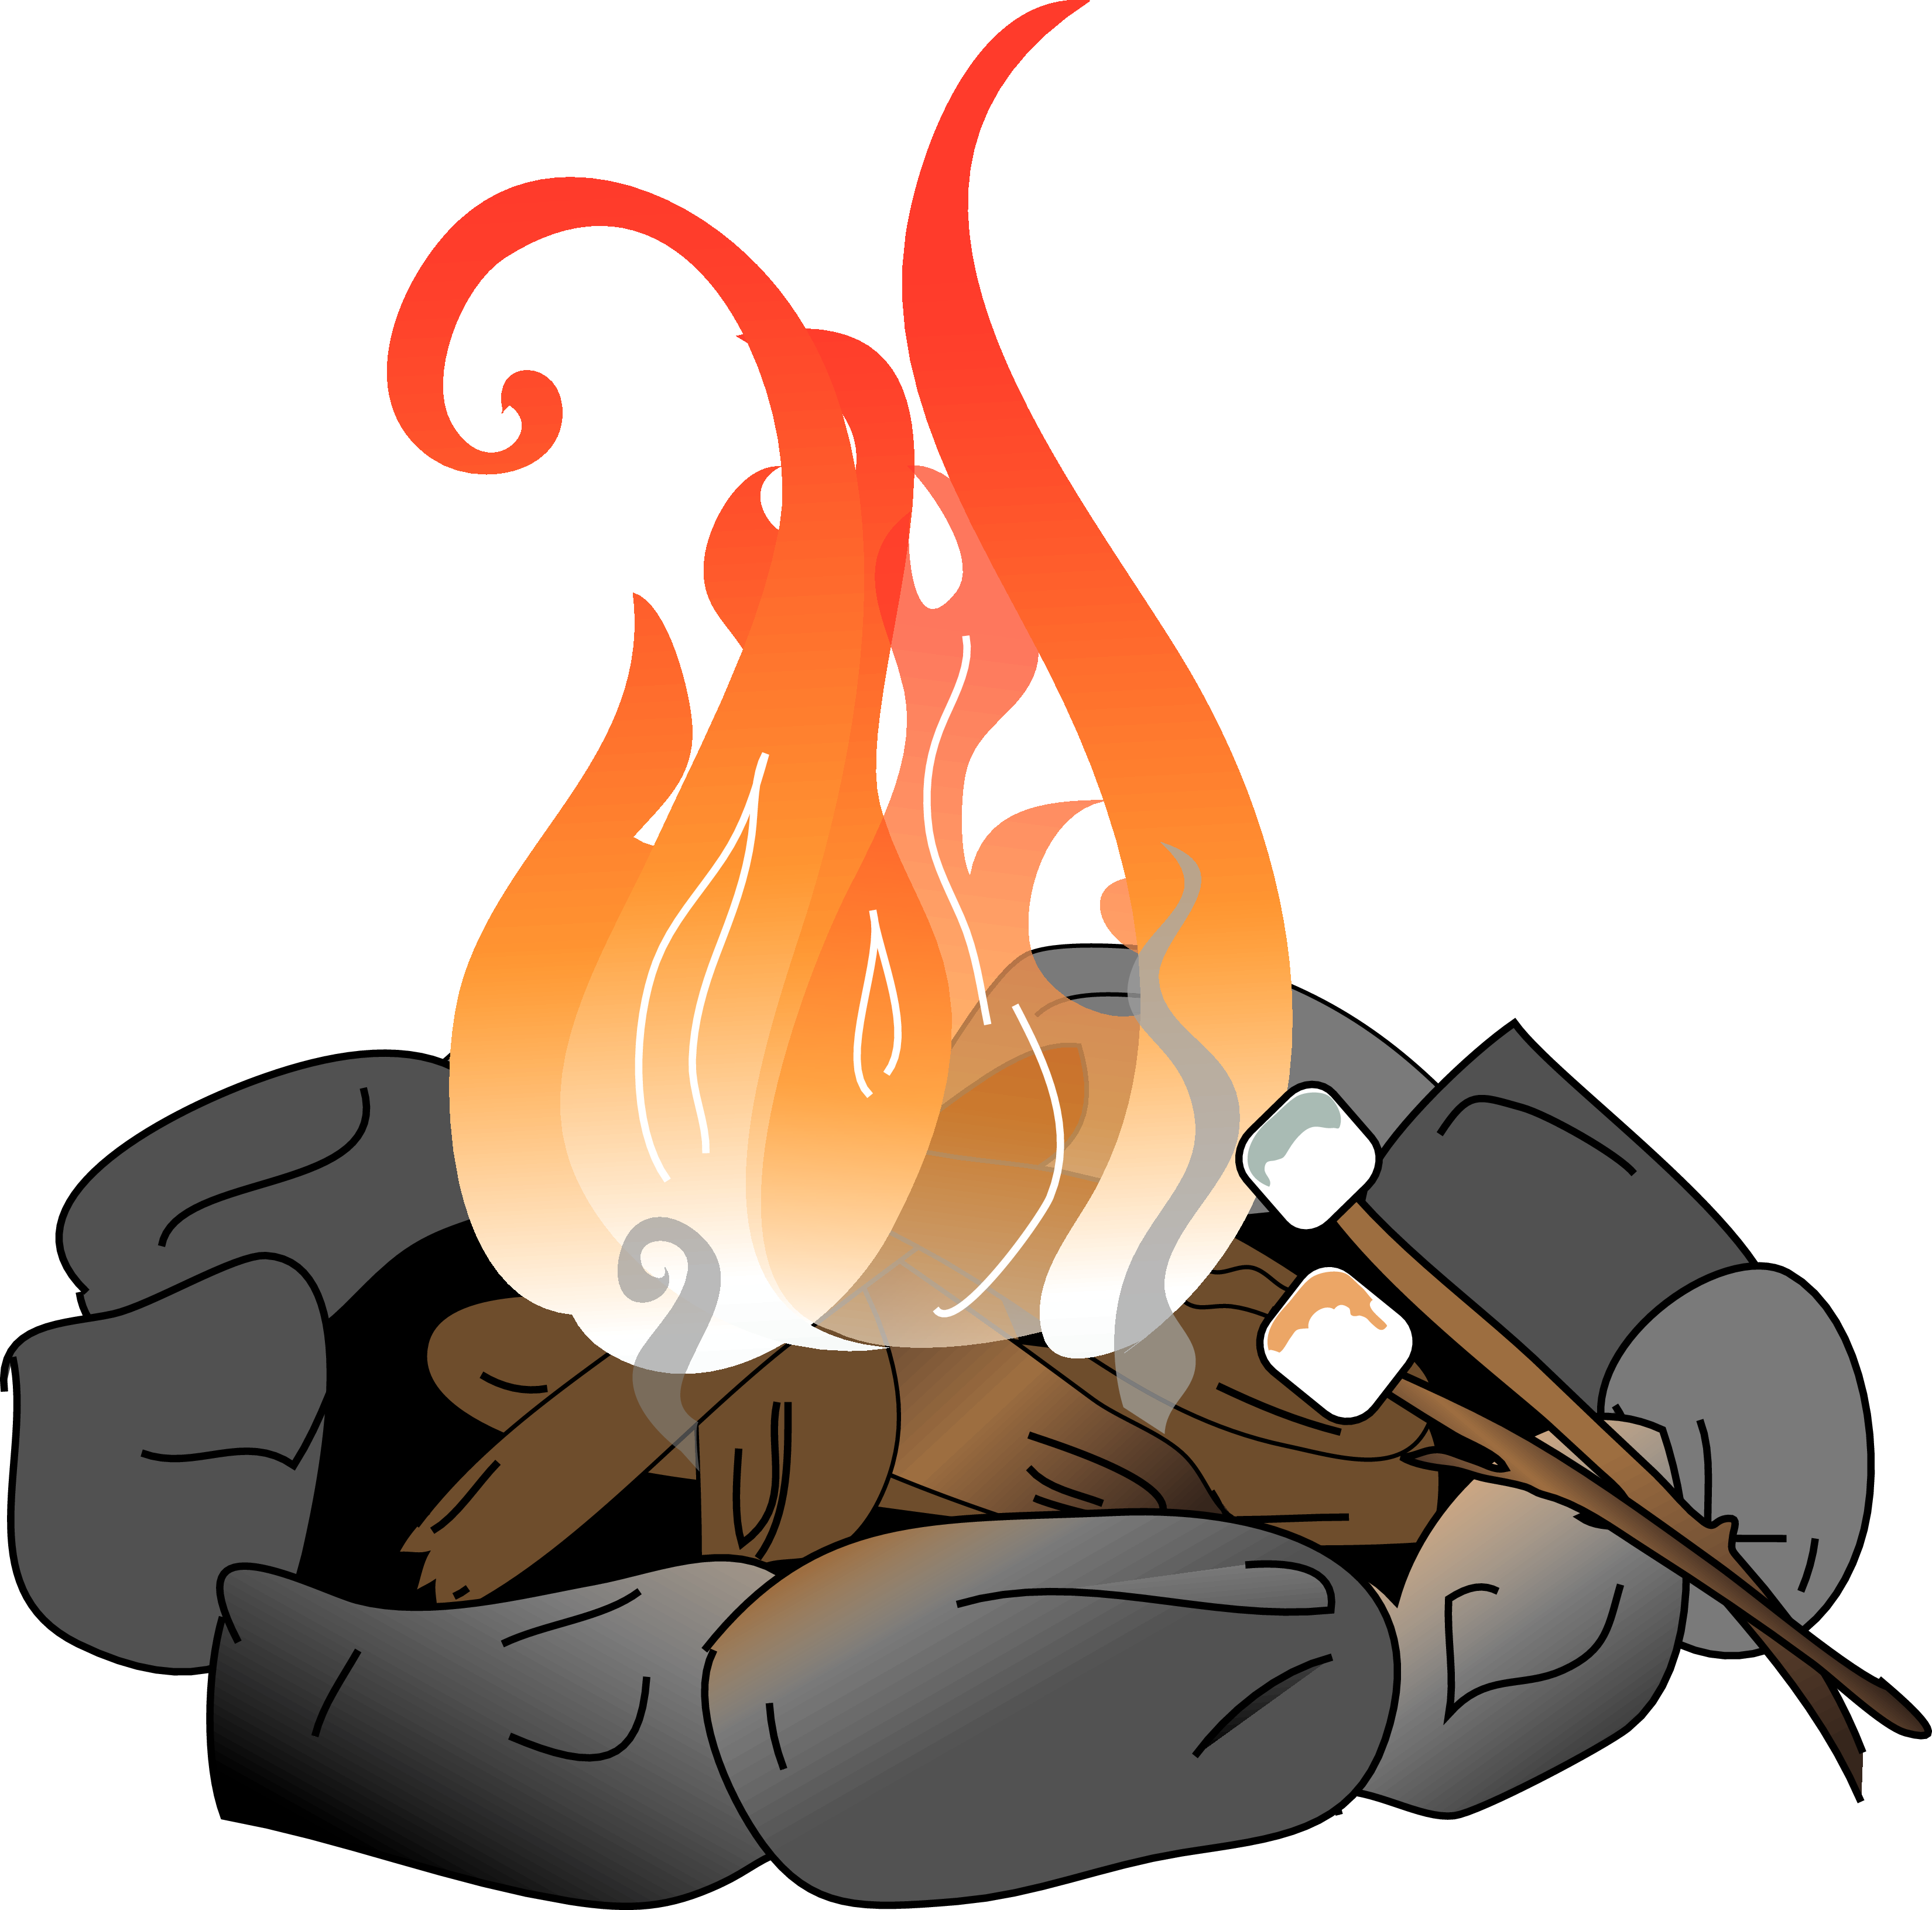 Heat clipart hot man. Camp fire pit pencil